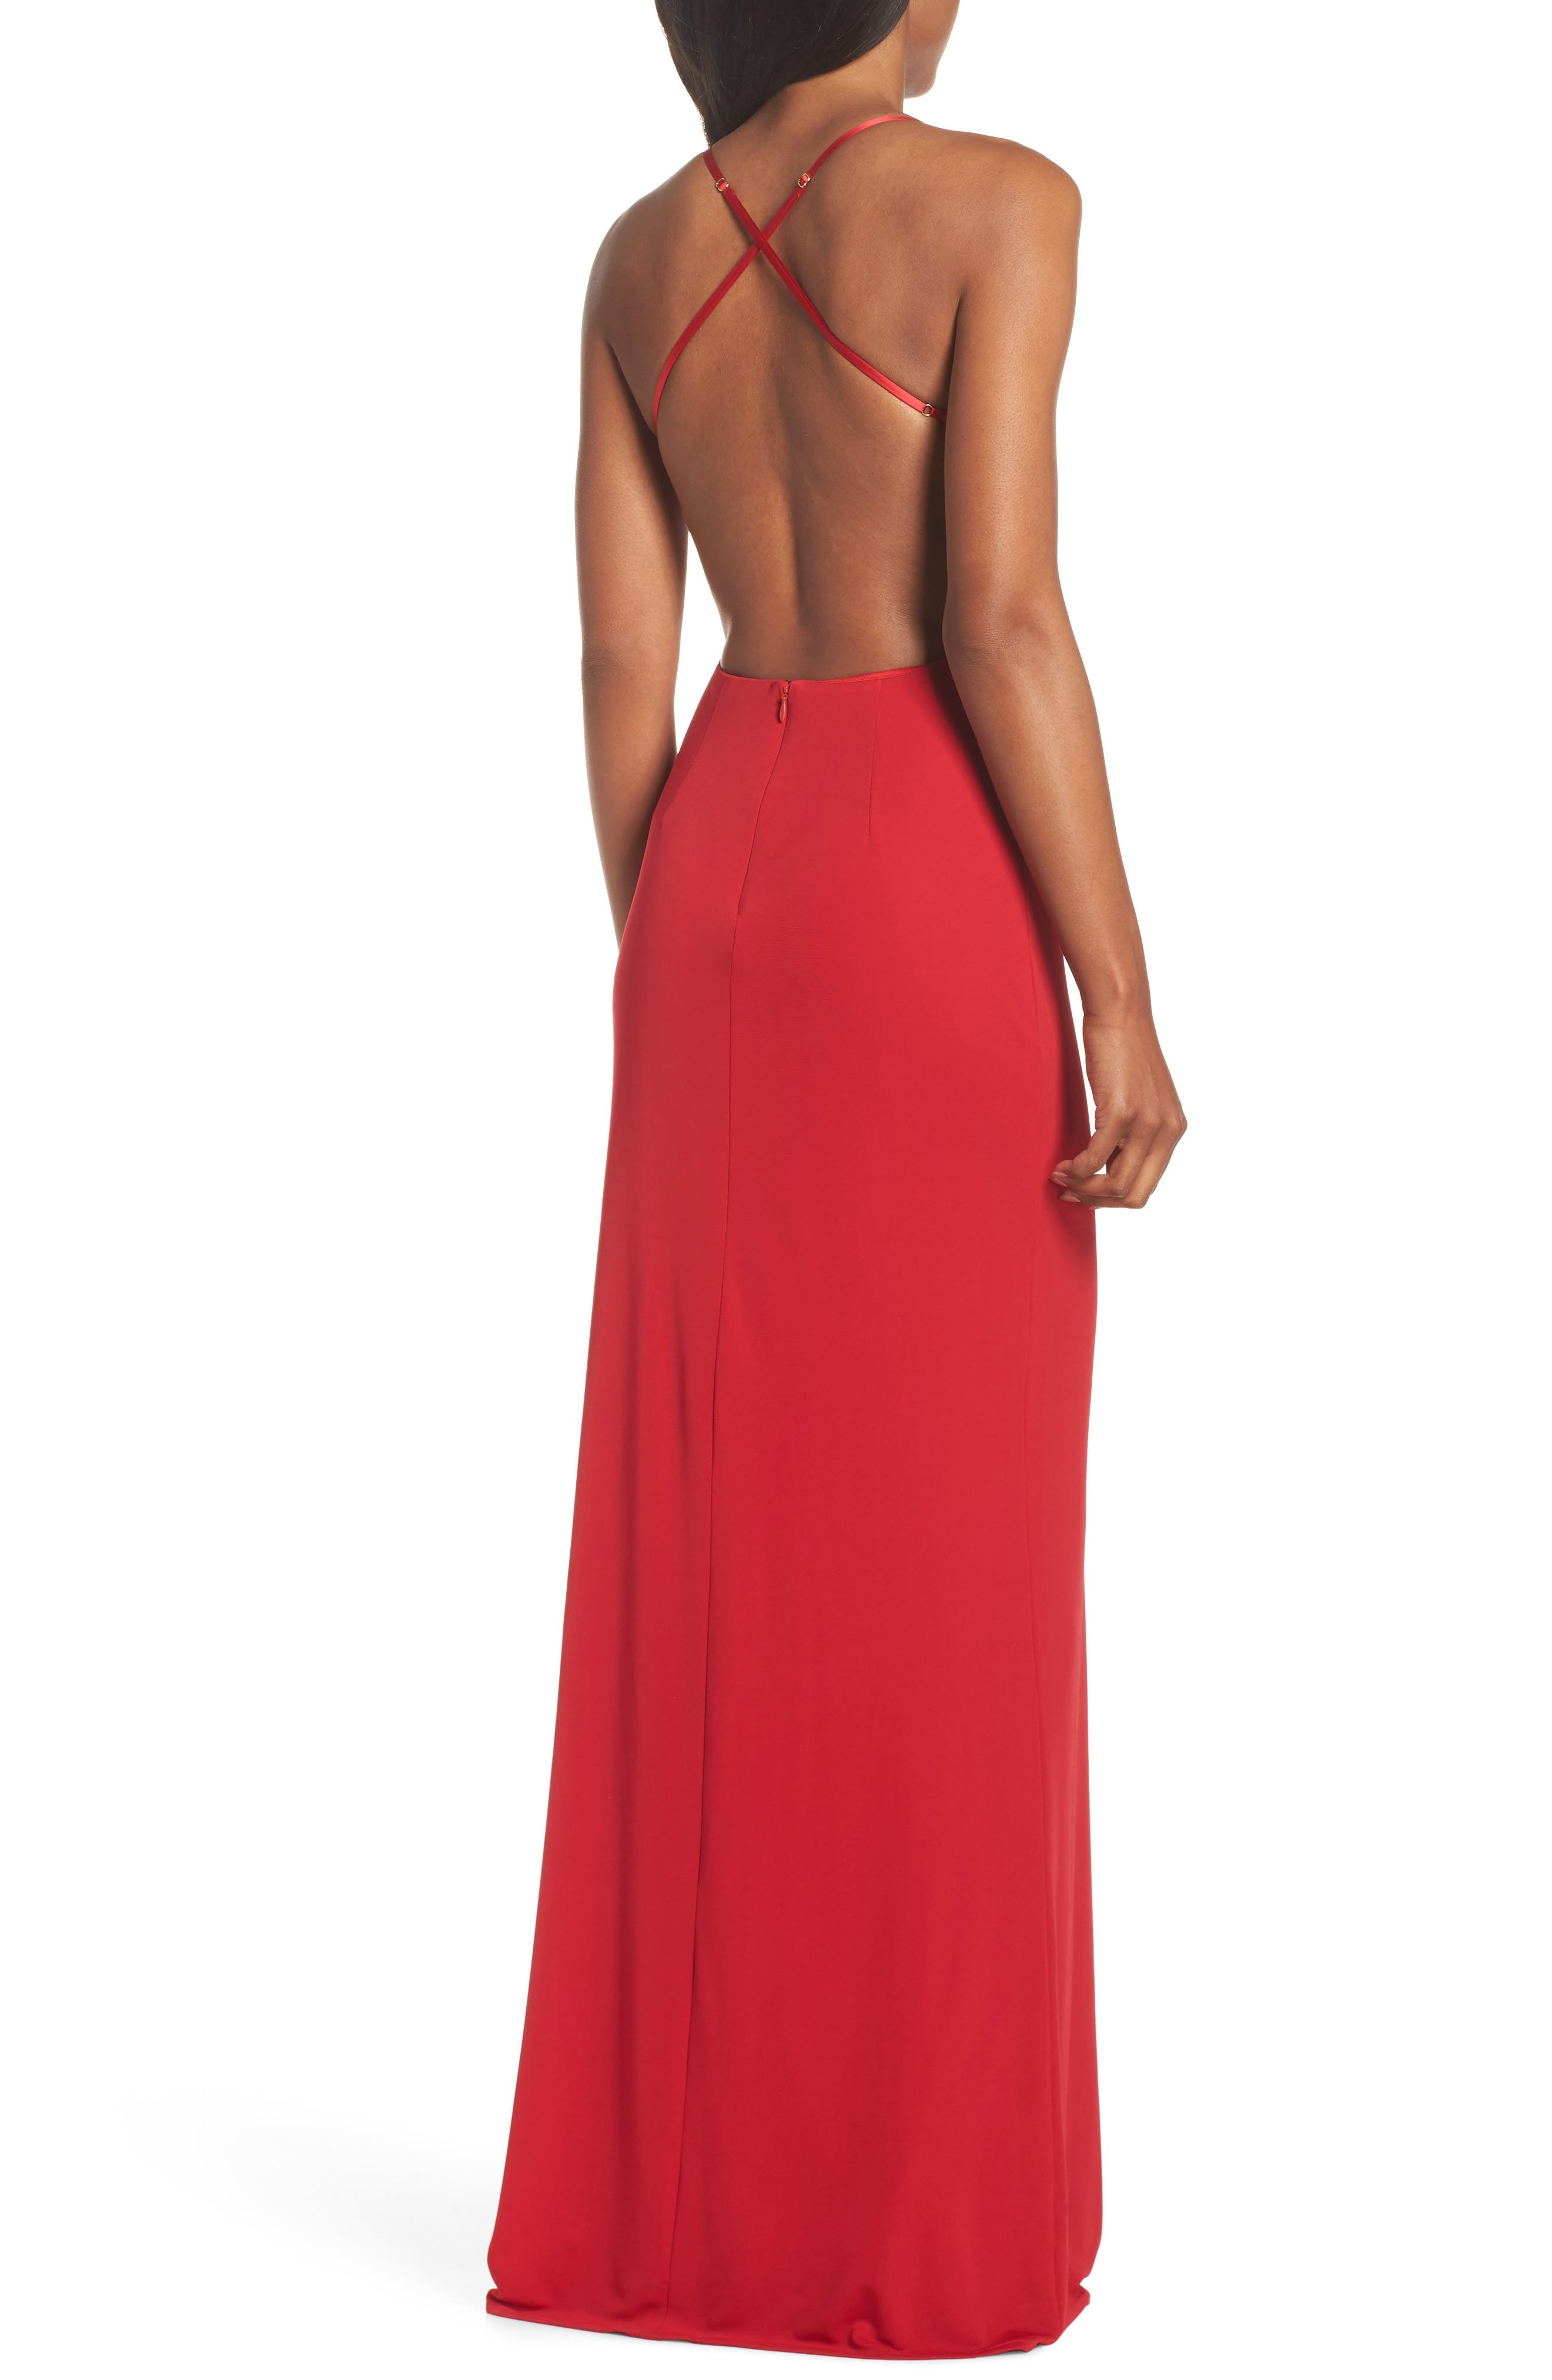 Donna Backless Jersey Dress,                             Alternate thumbnail 2, color,                             Red